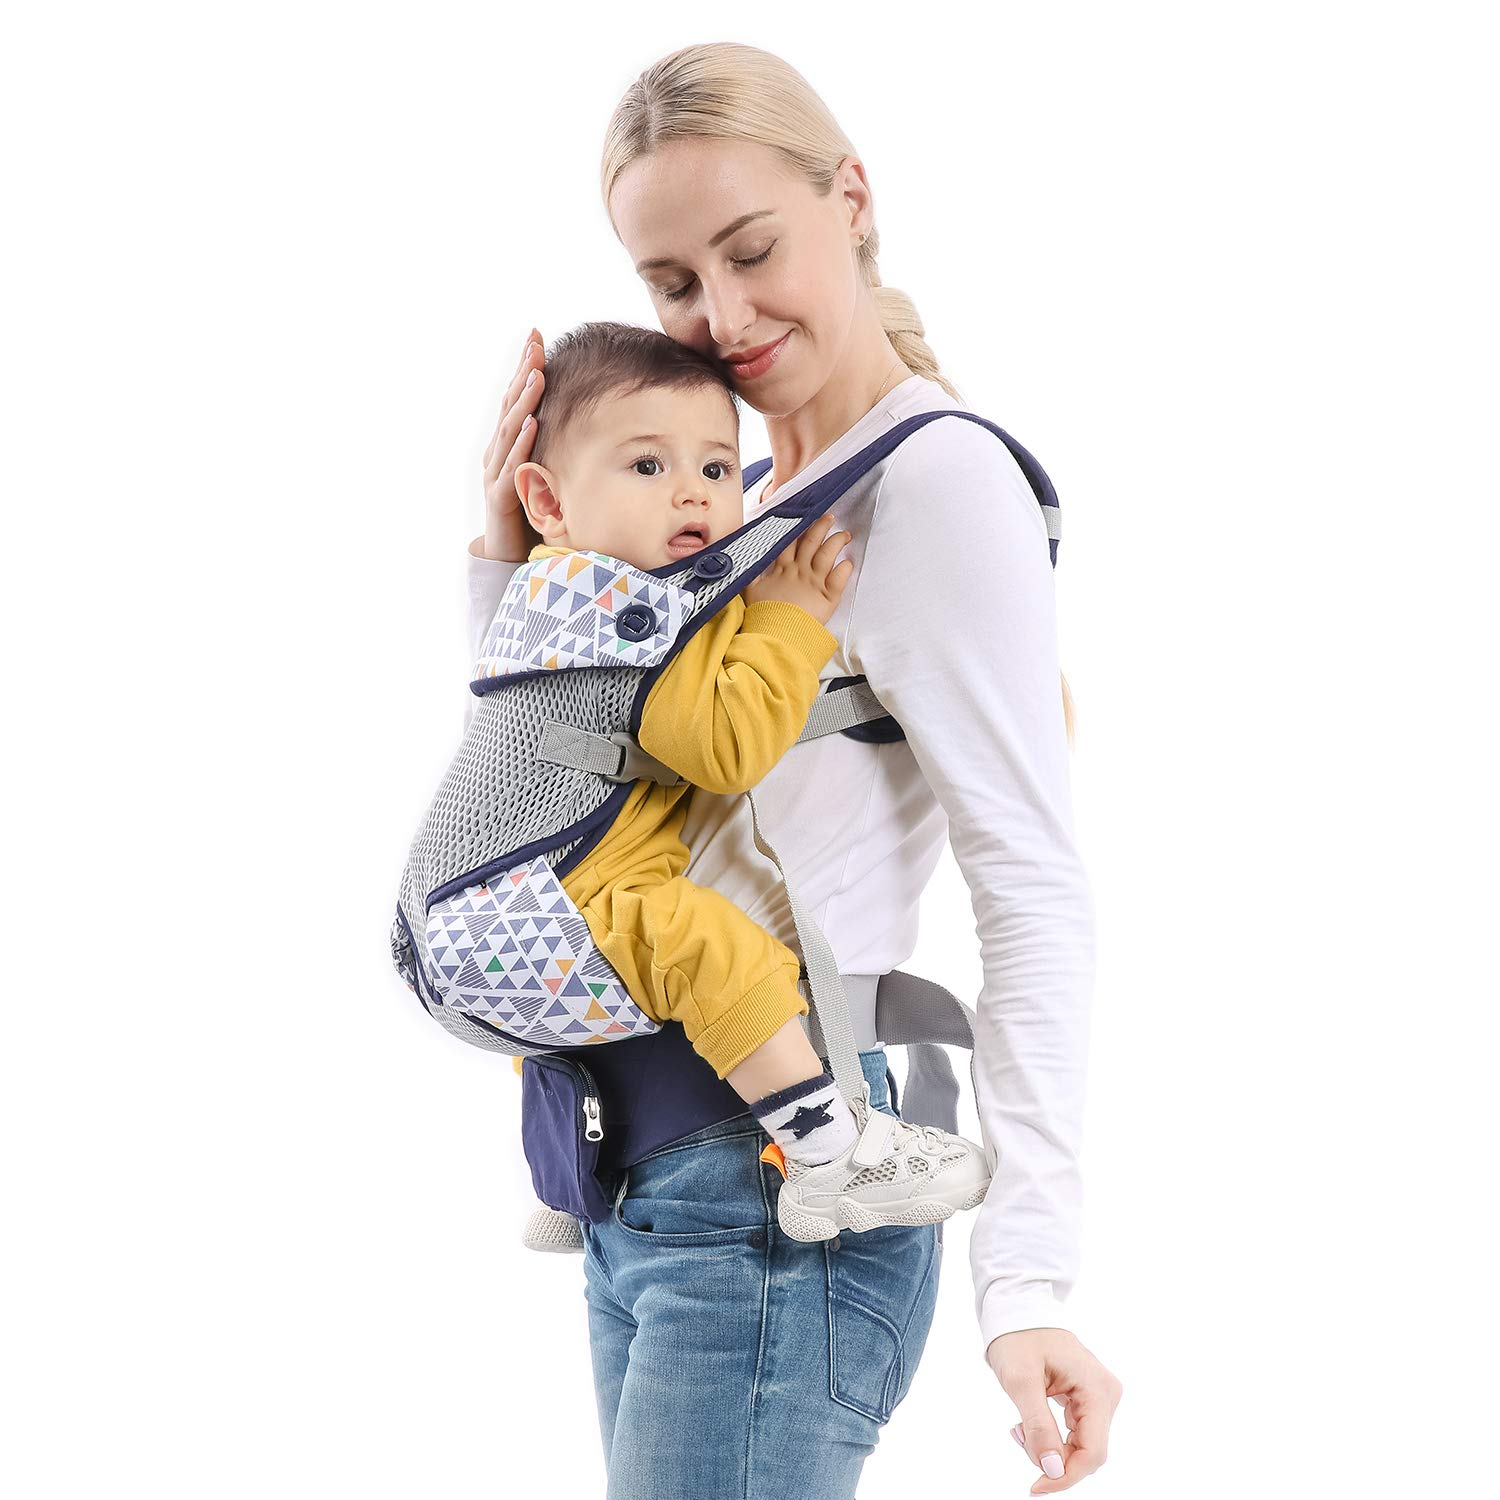 mommore Breathable Baby Carrier Ergonomic Soft Carrier with Bibs, Detachable Small Pouch for Infant and Toddler, Blue